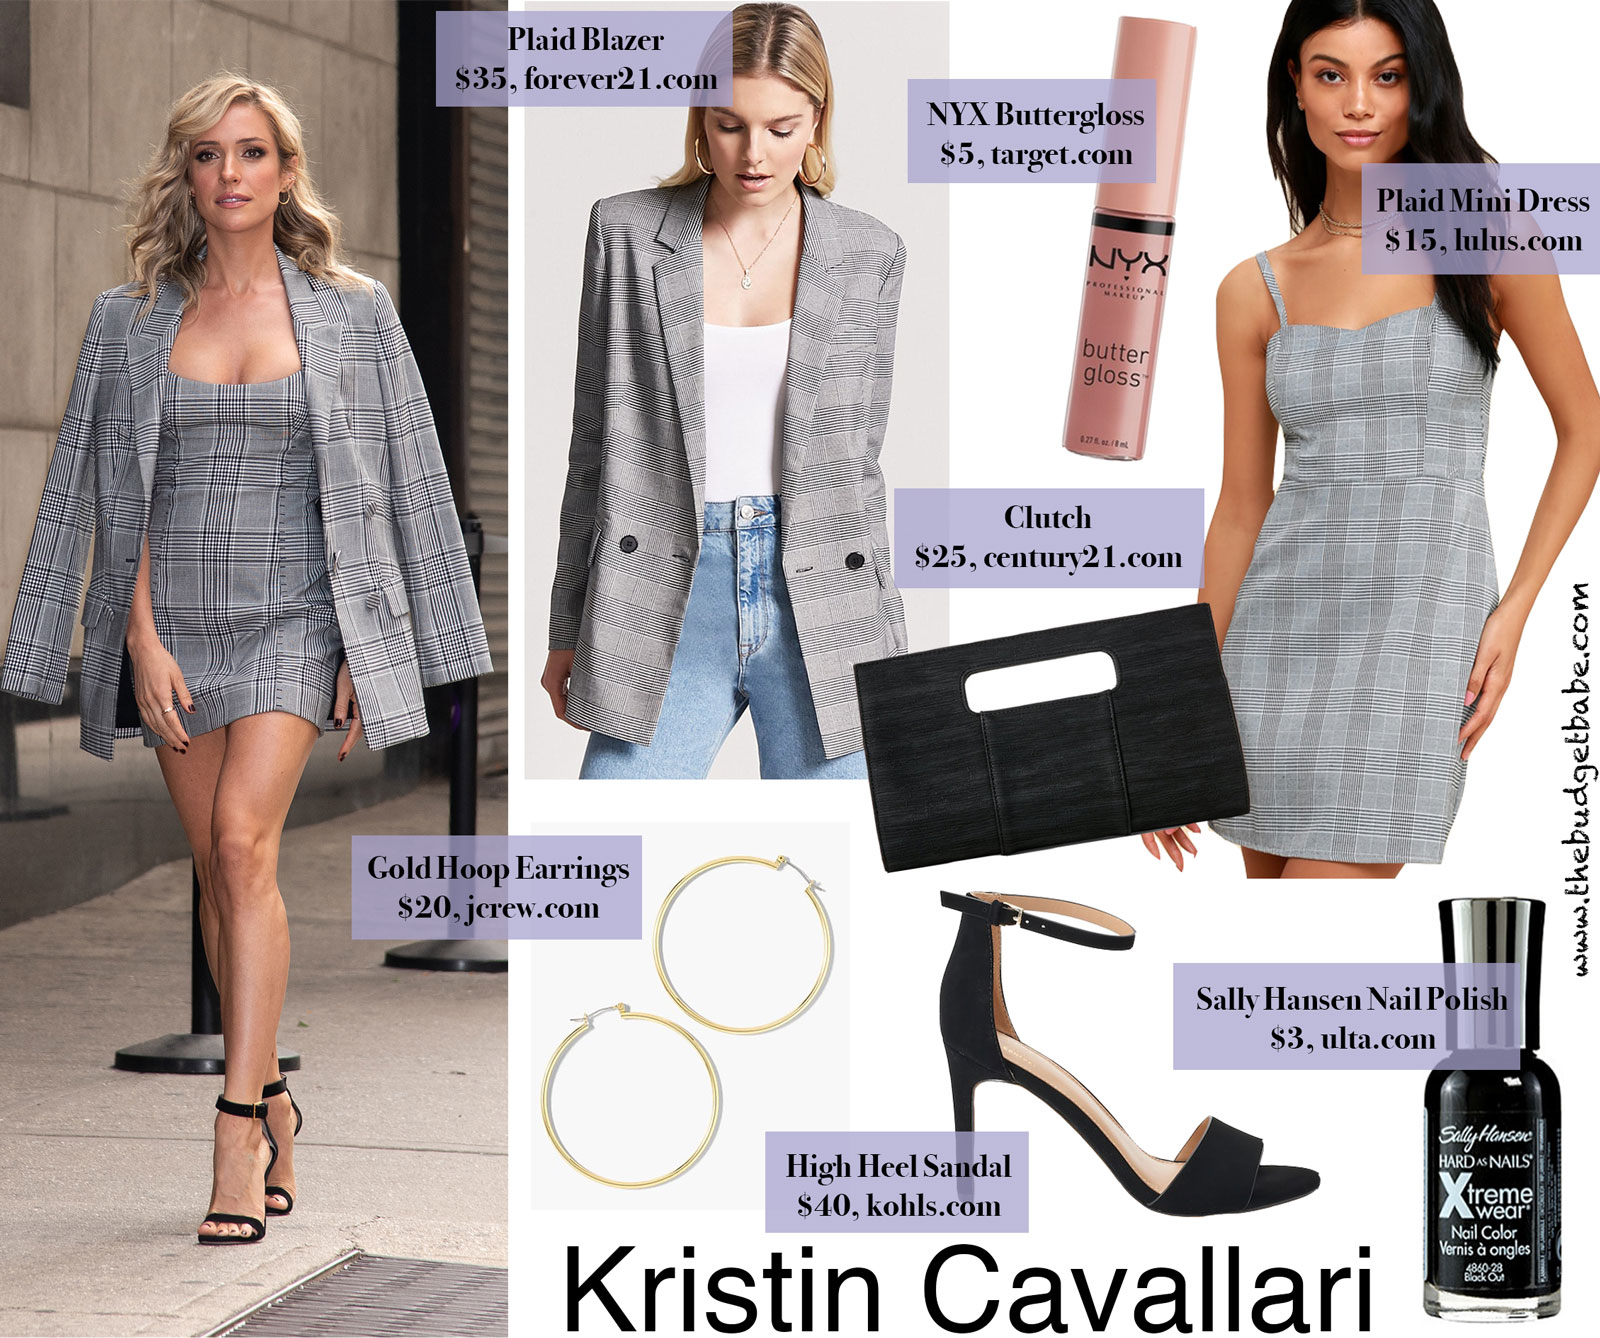 Kristin Cavallari Plaid Mini Dress Look for Less